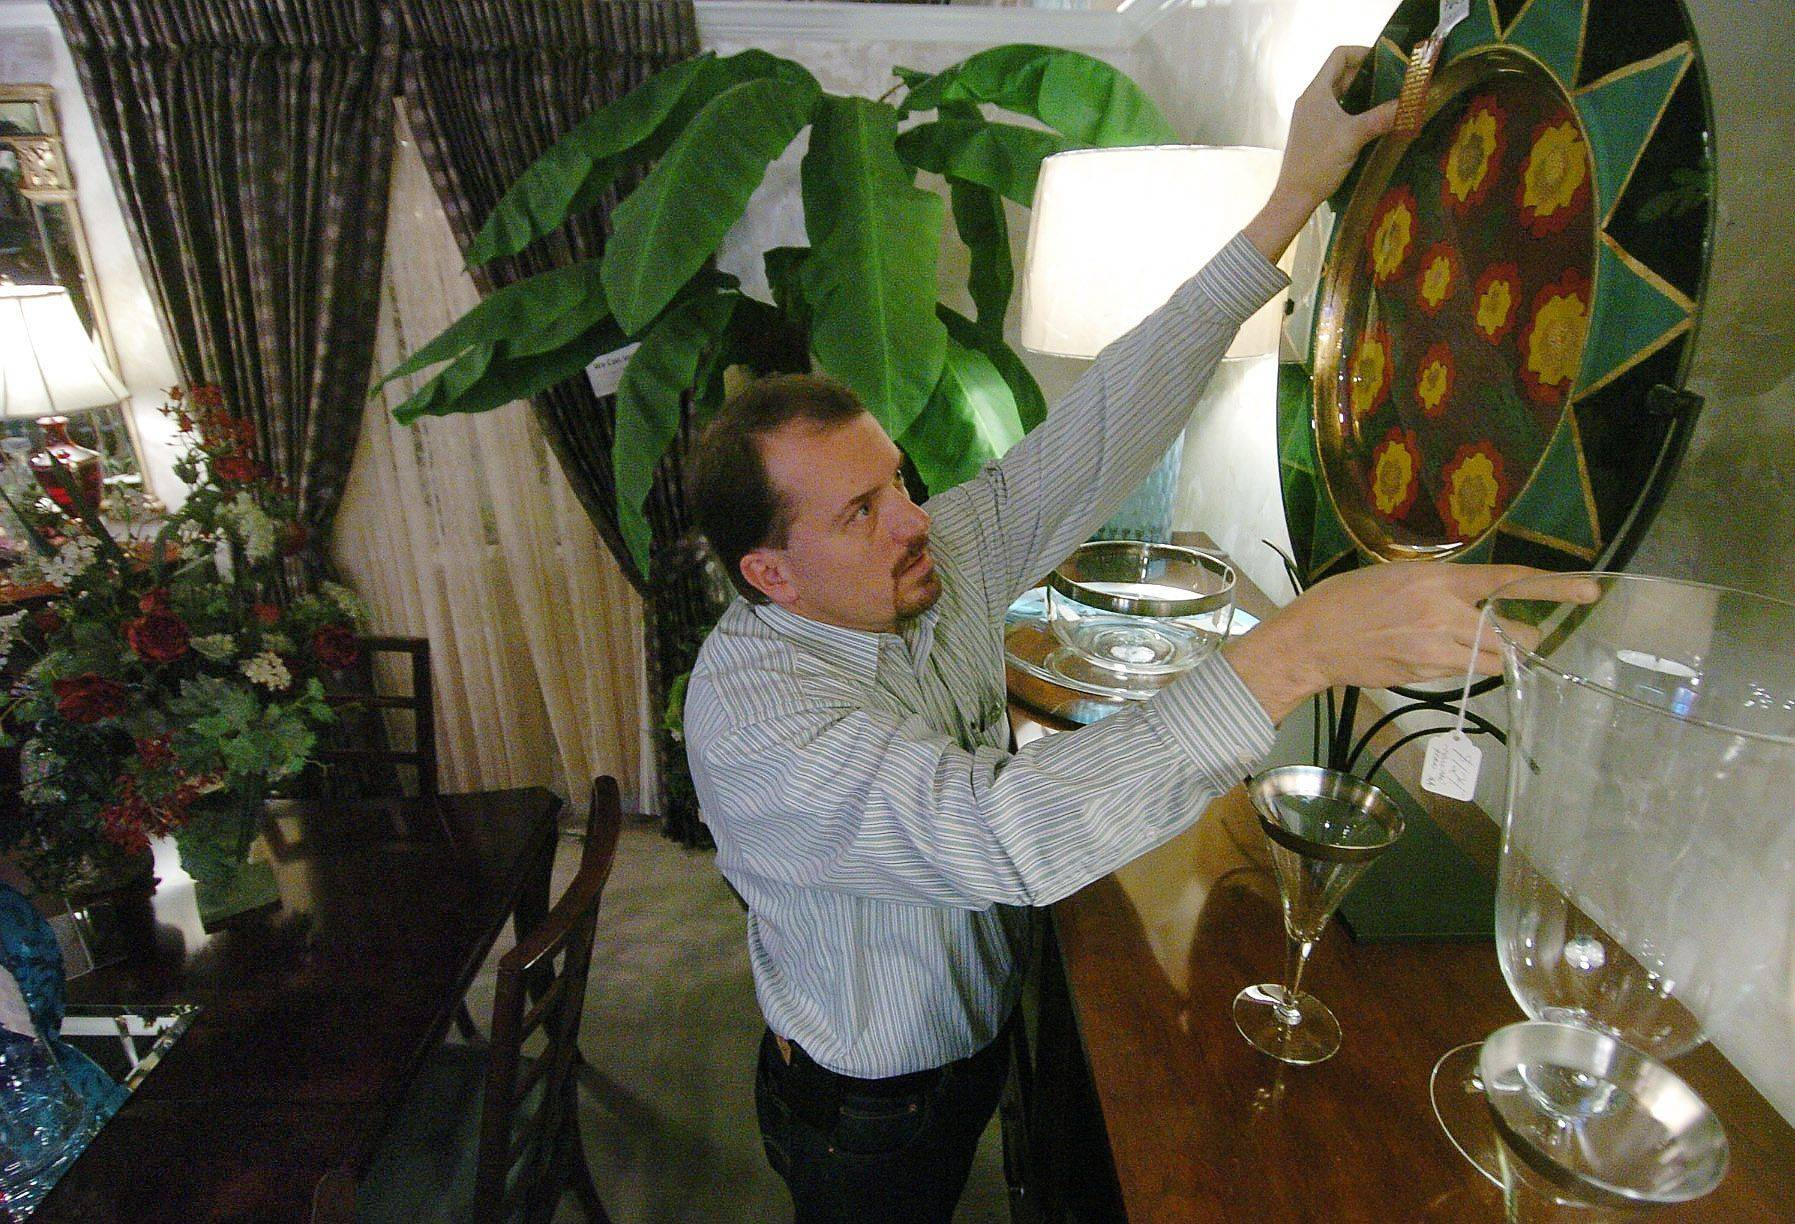 Mike Main, co-owner of Arden's furniture store, hangs a decorative platter for display. The business is closing after 37 years in downtown Libertyville.